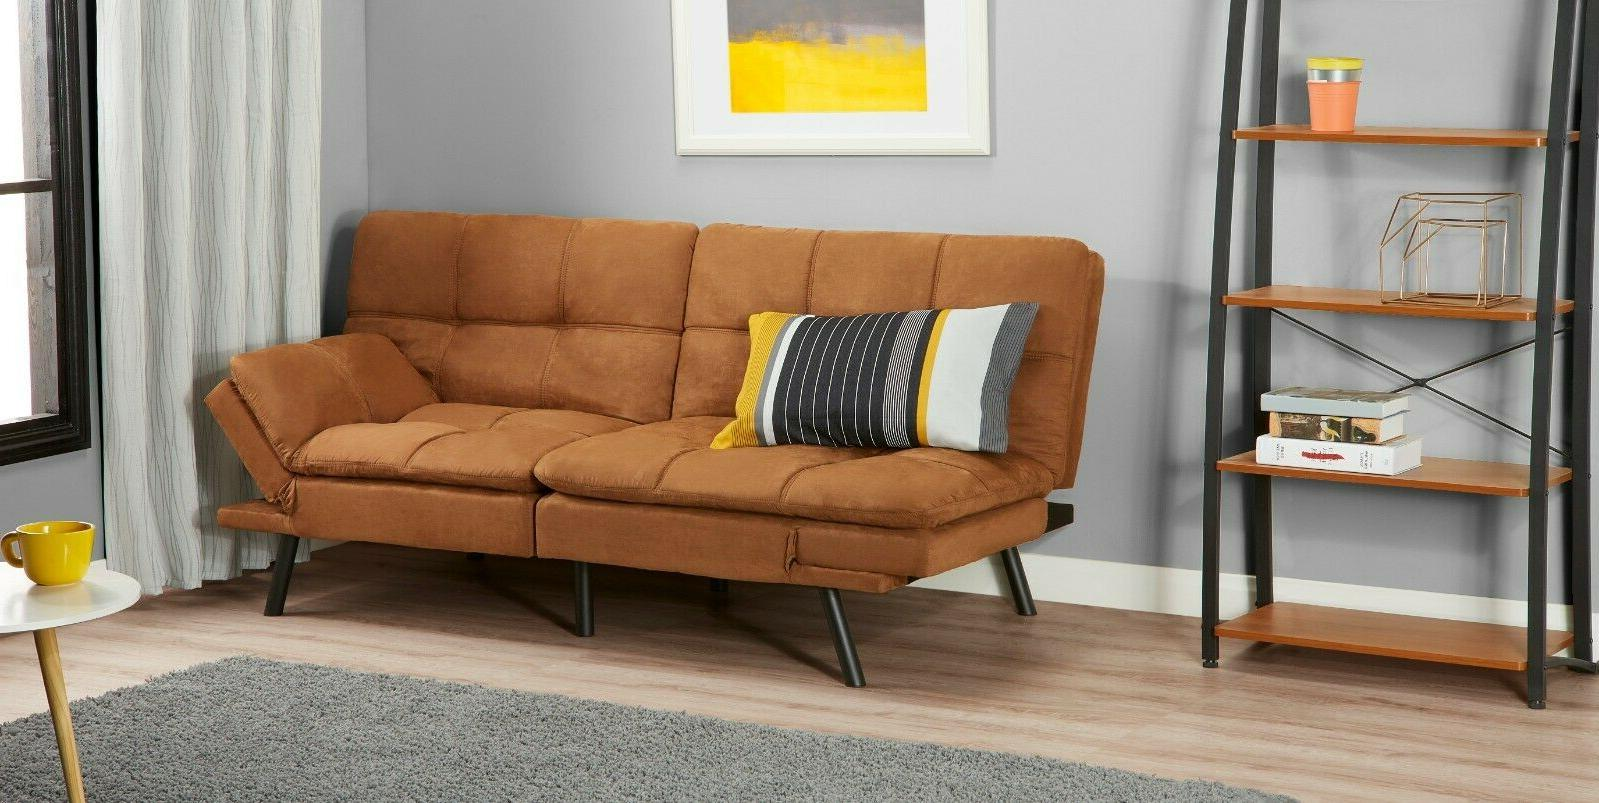 Memory Sofa Bed Couch Sleeper Foldable Loveseat Size